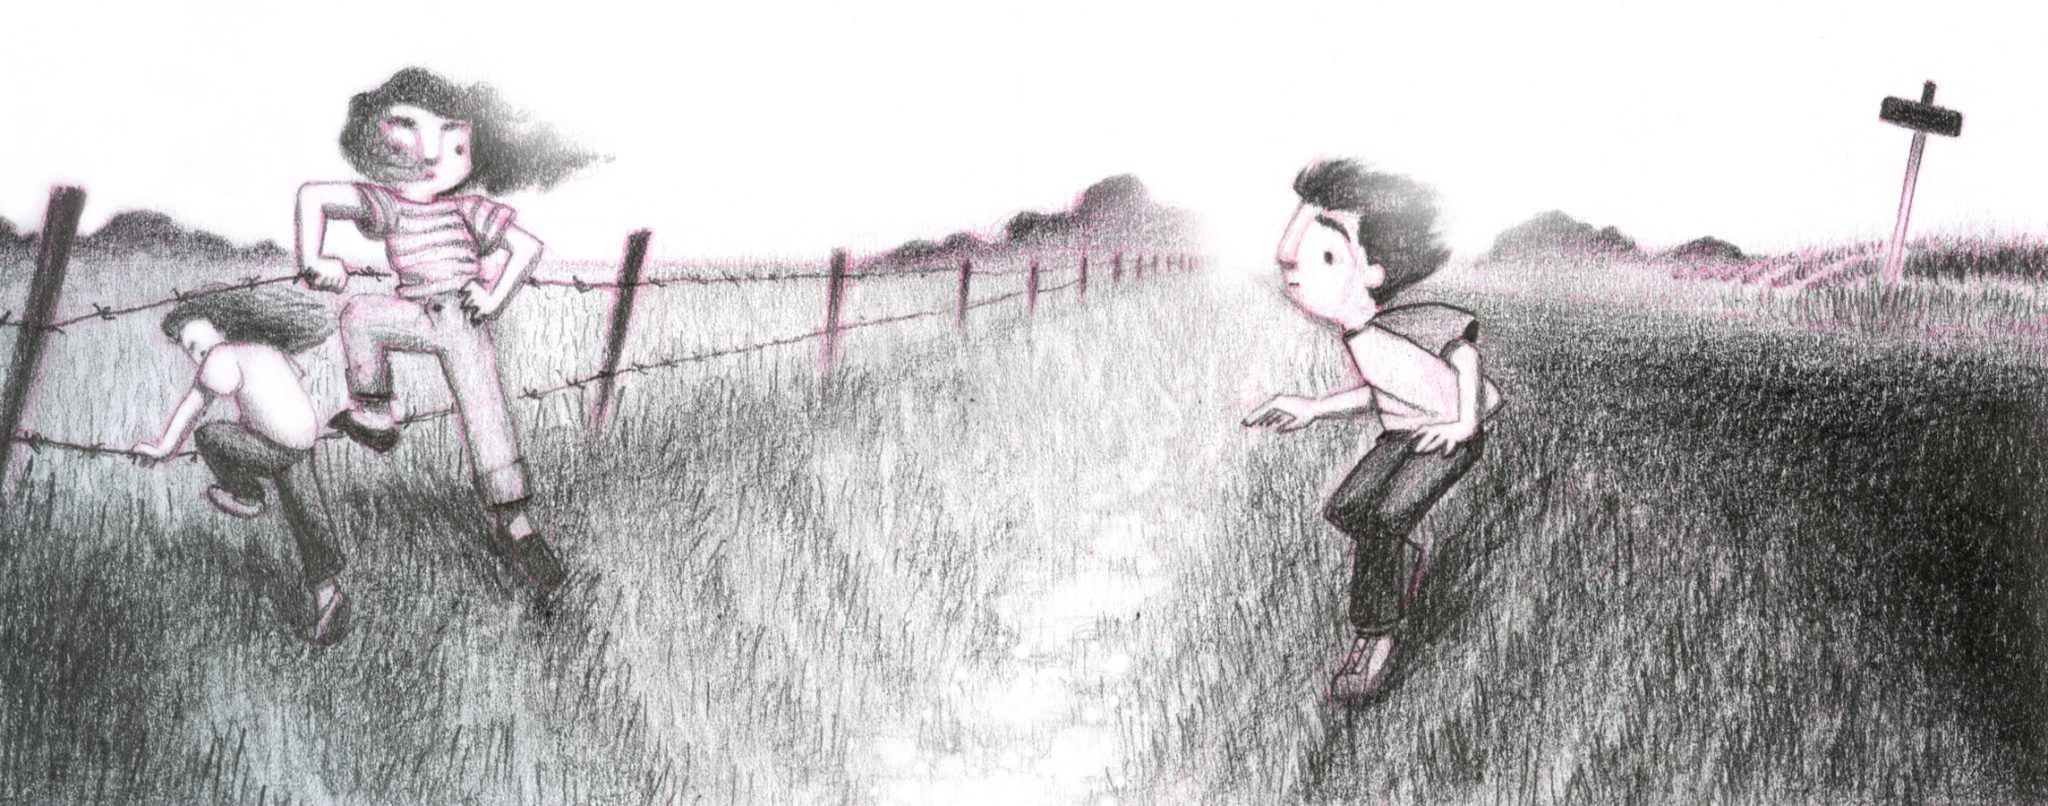 Illustration: small children cross through a culvert and crawl under a barbed wire fence.